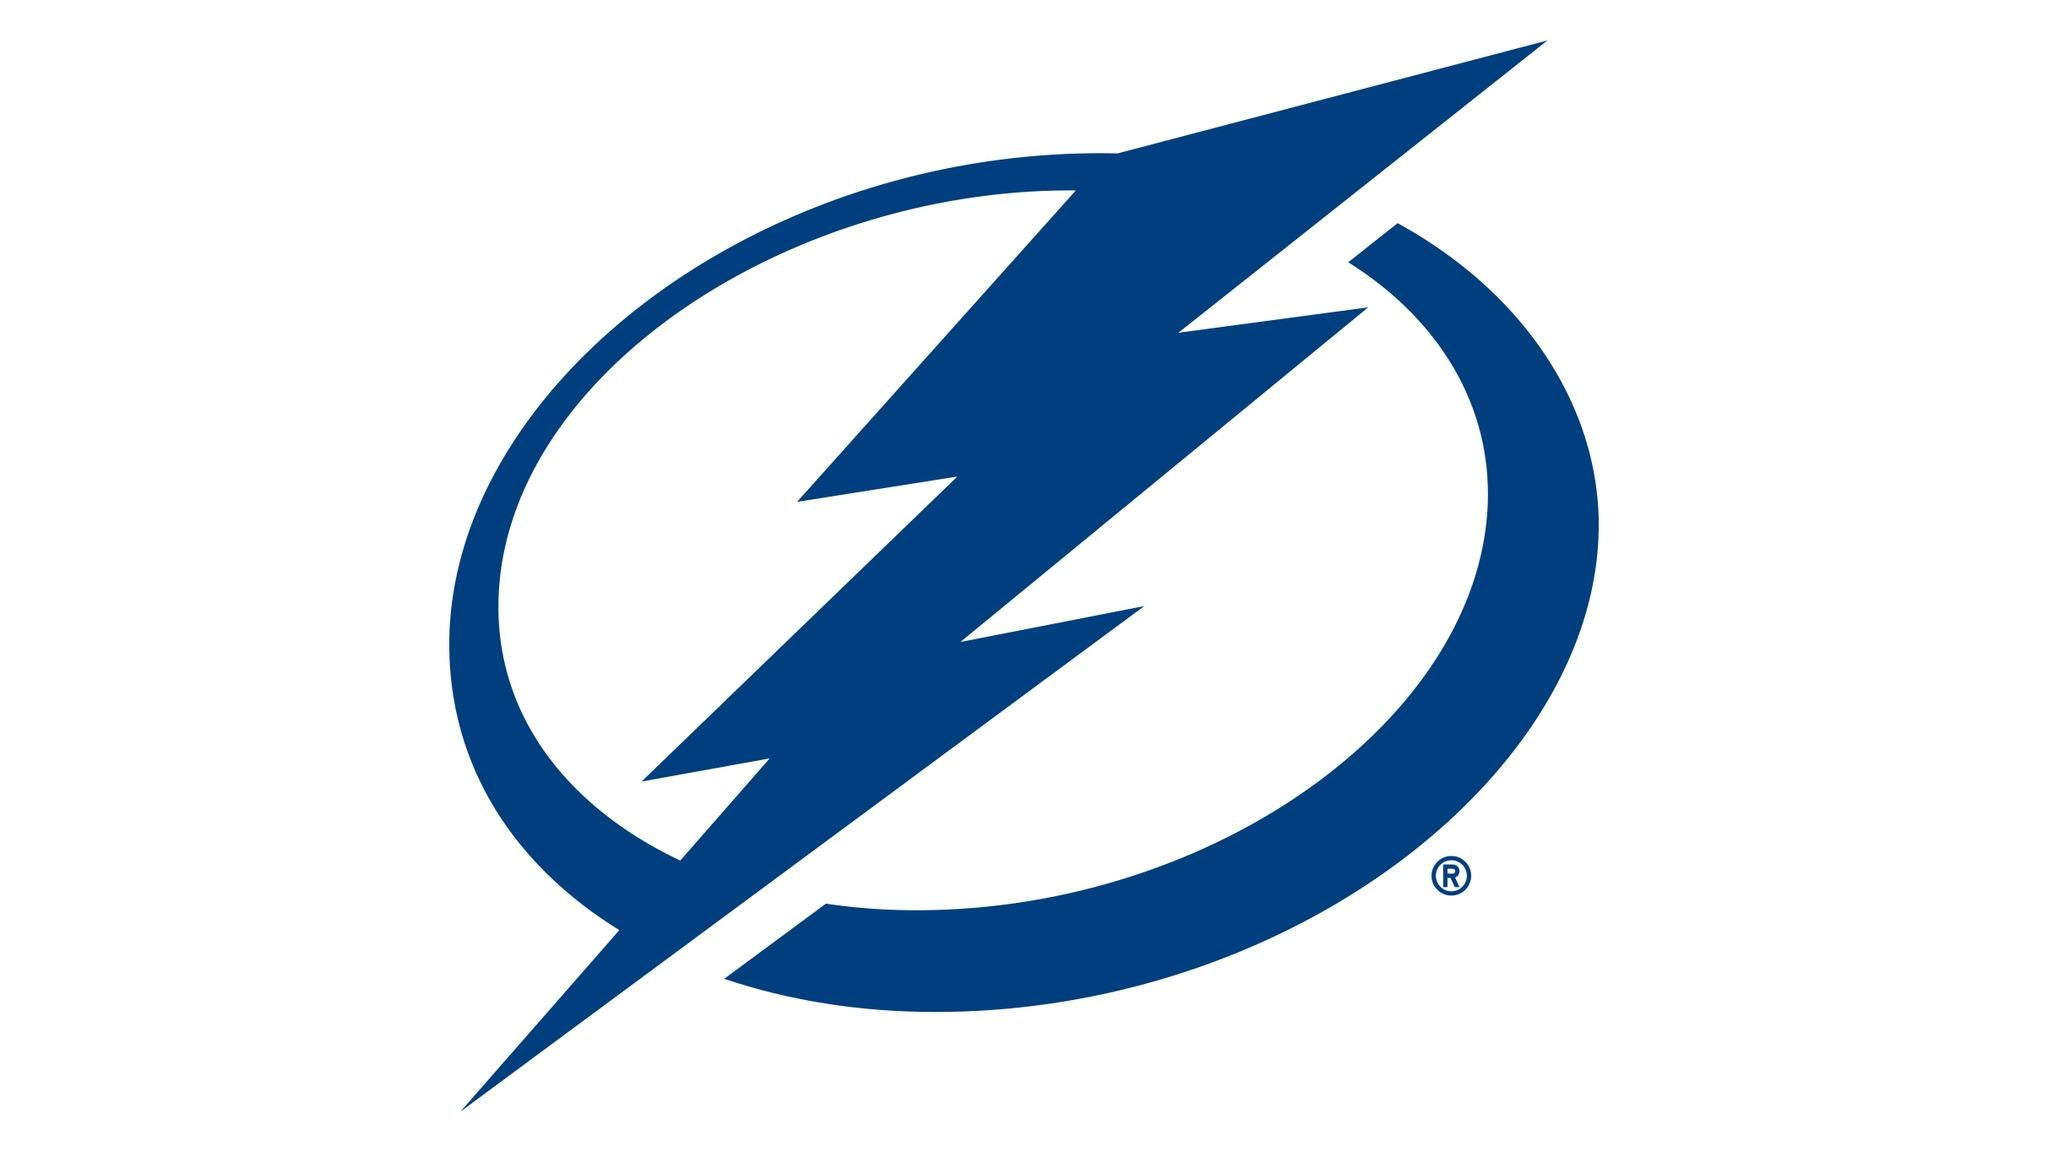 Tampa Bay Lightning v St. Louis Blues at Amalie Arena - Tampa, FL 33602